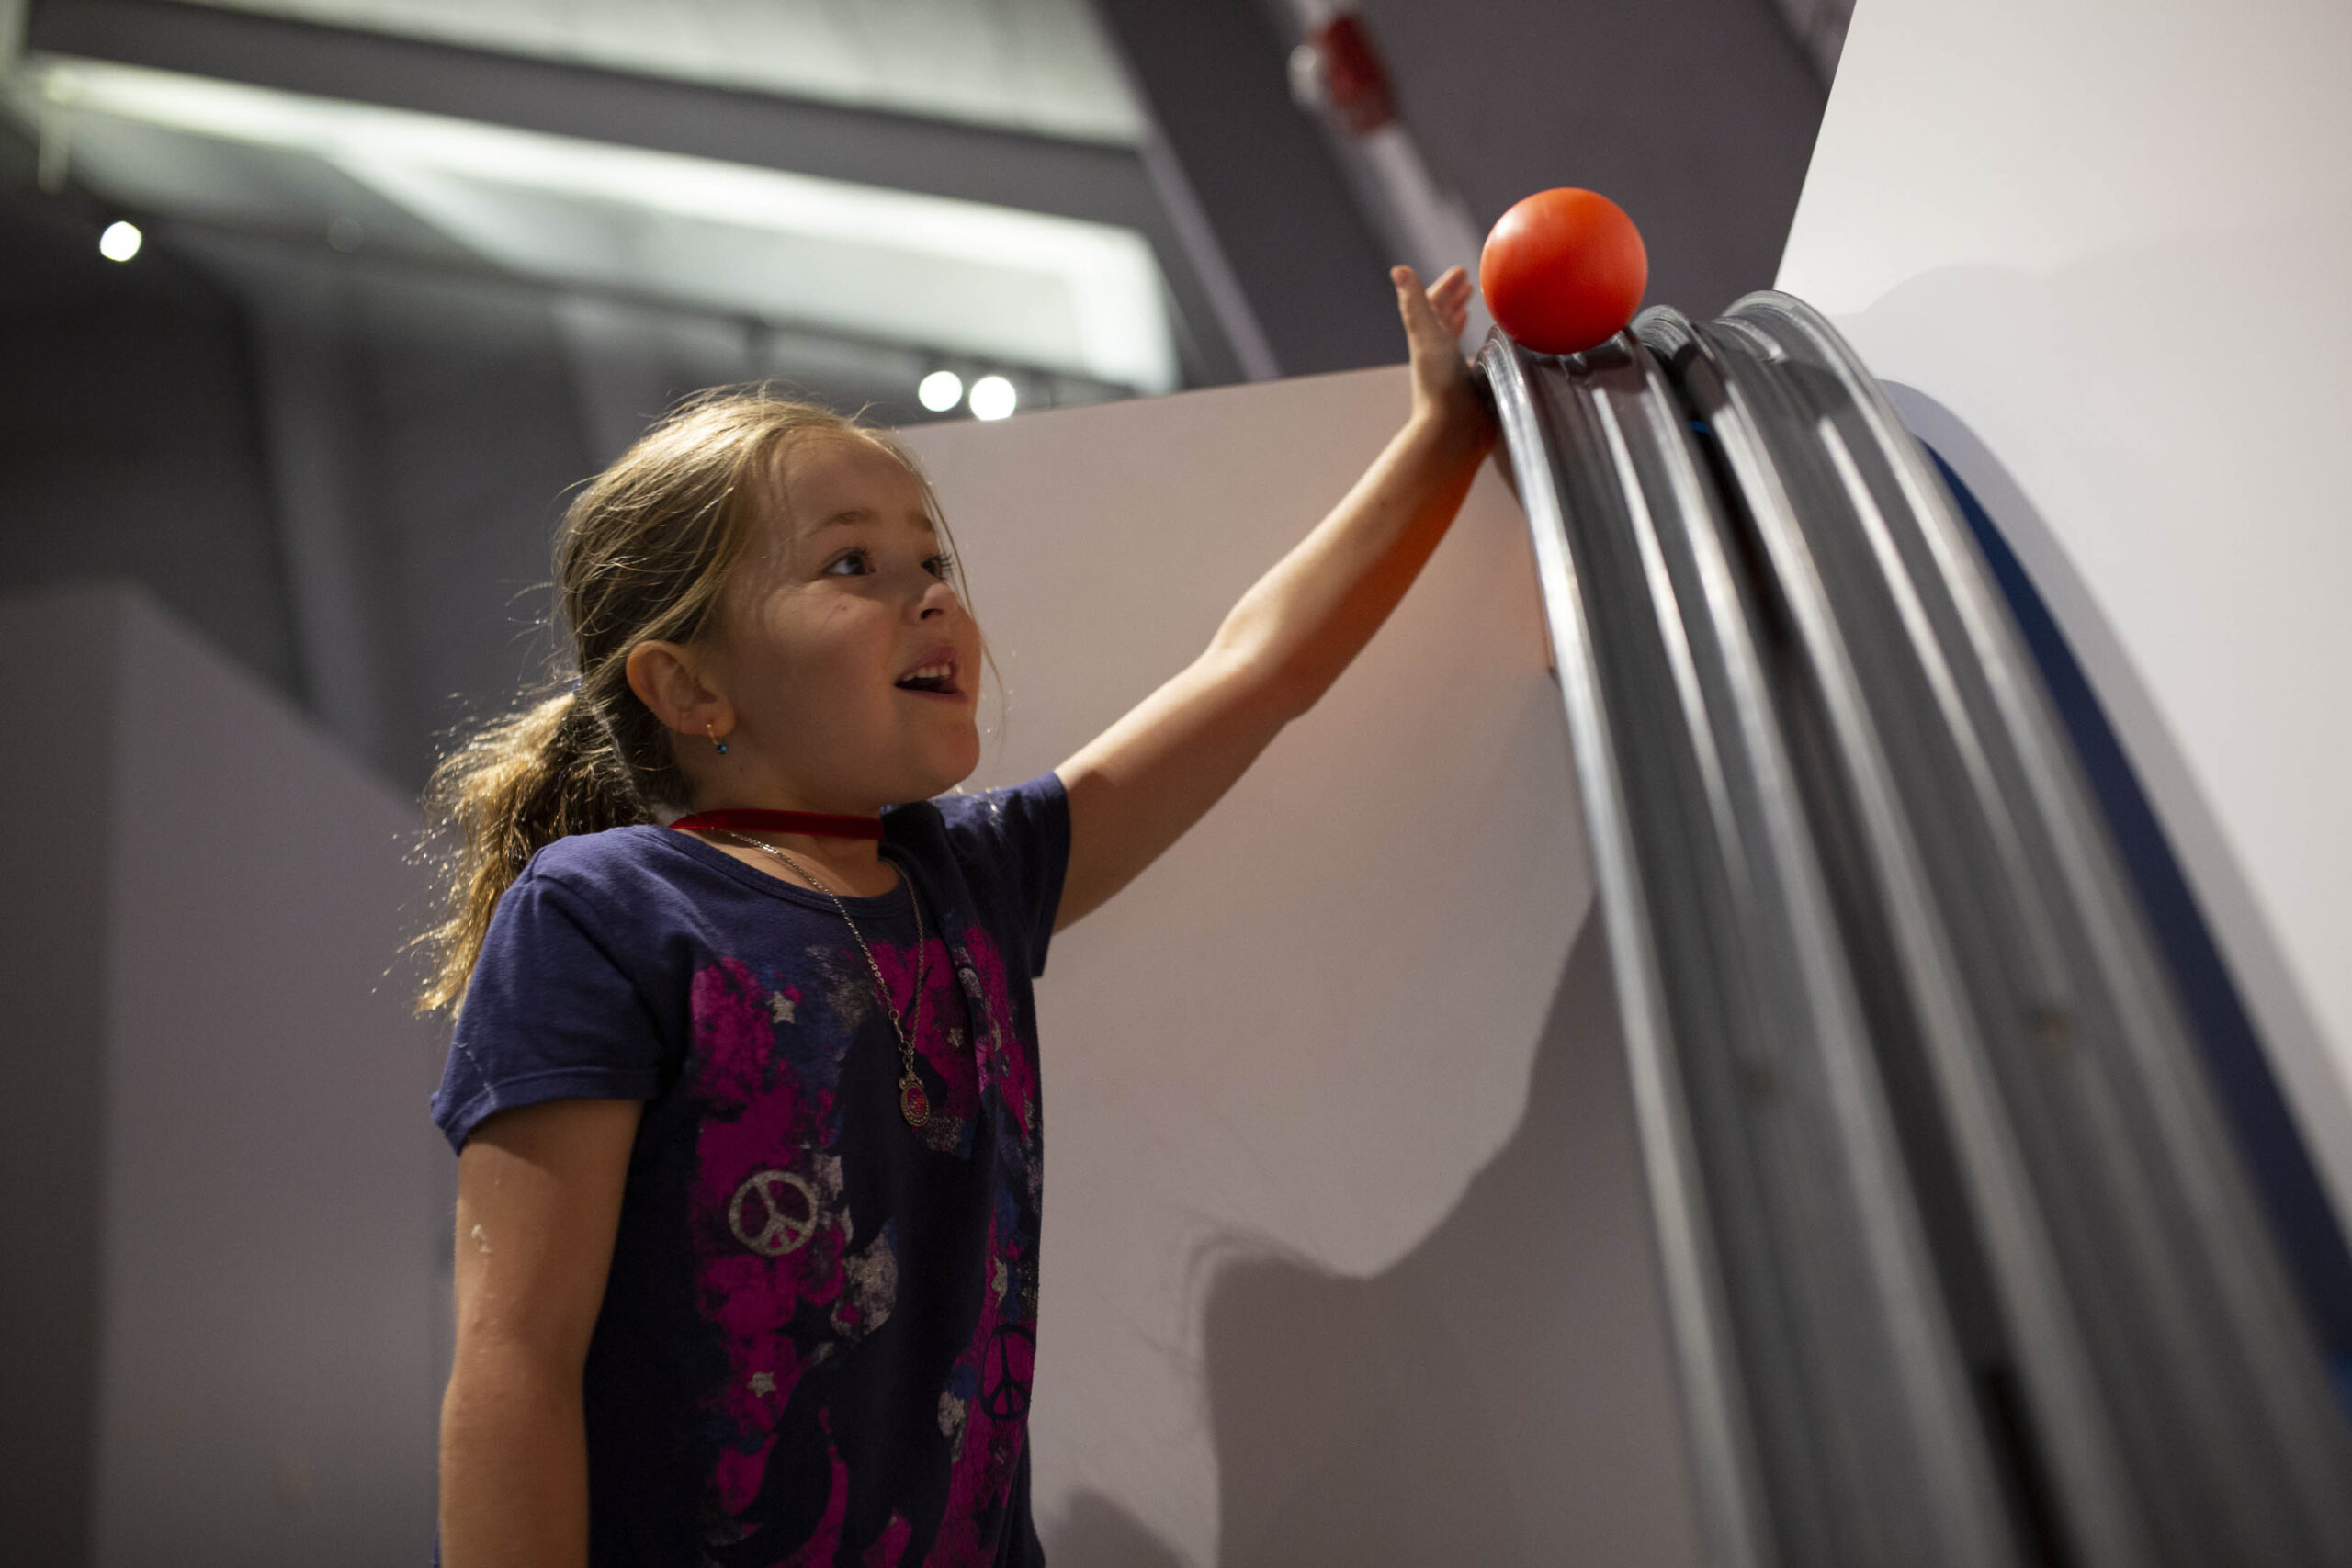 A young child setting a ball at the top of a ramp